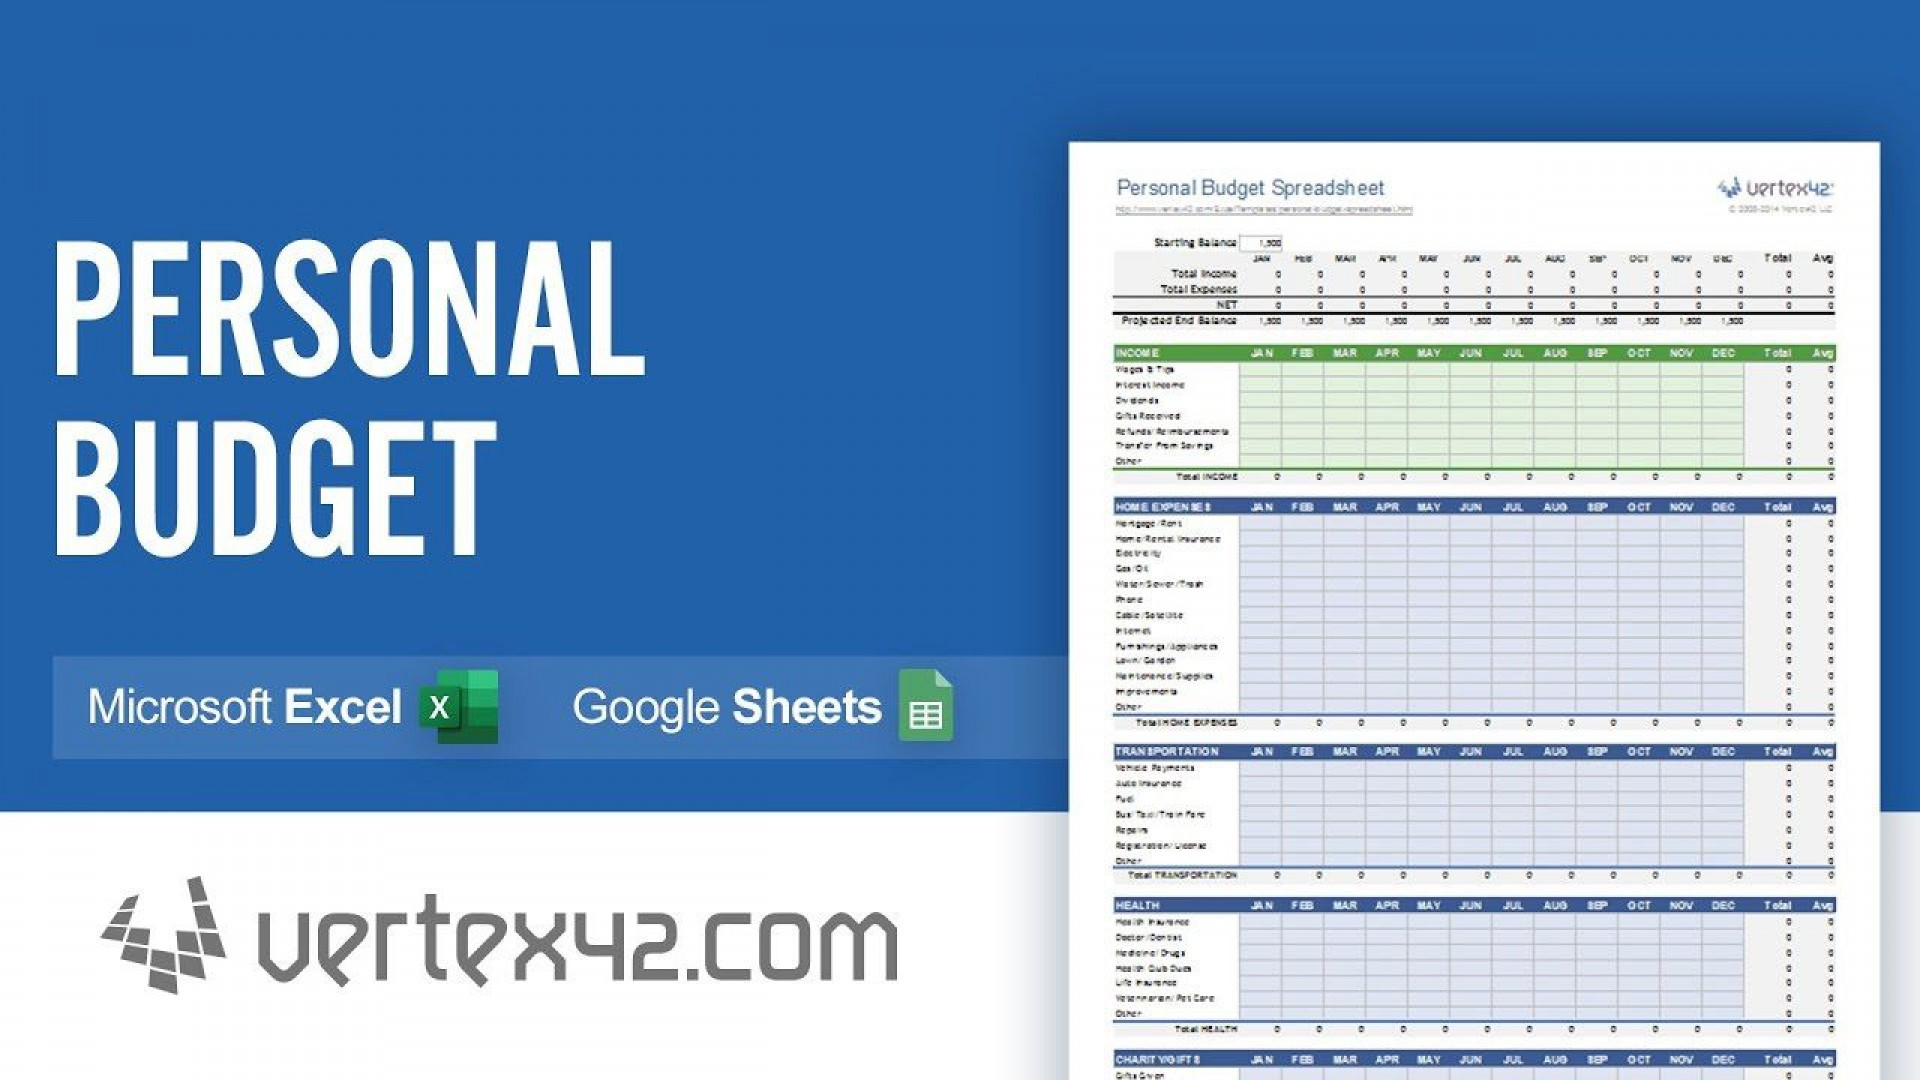 005 Magnificent Personal Budget Template Excel Design  Spreadsheet Simple South Africa1920